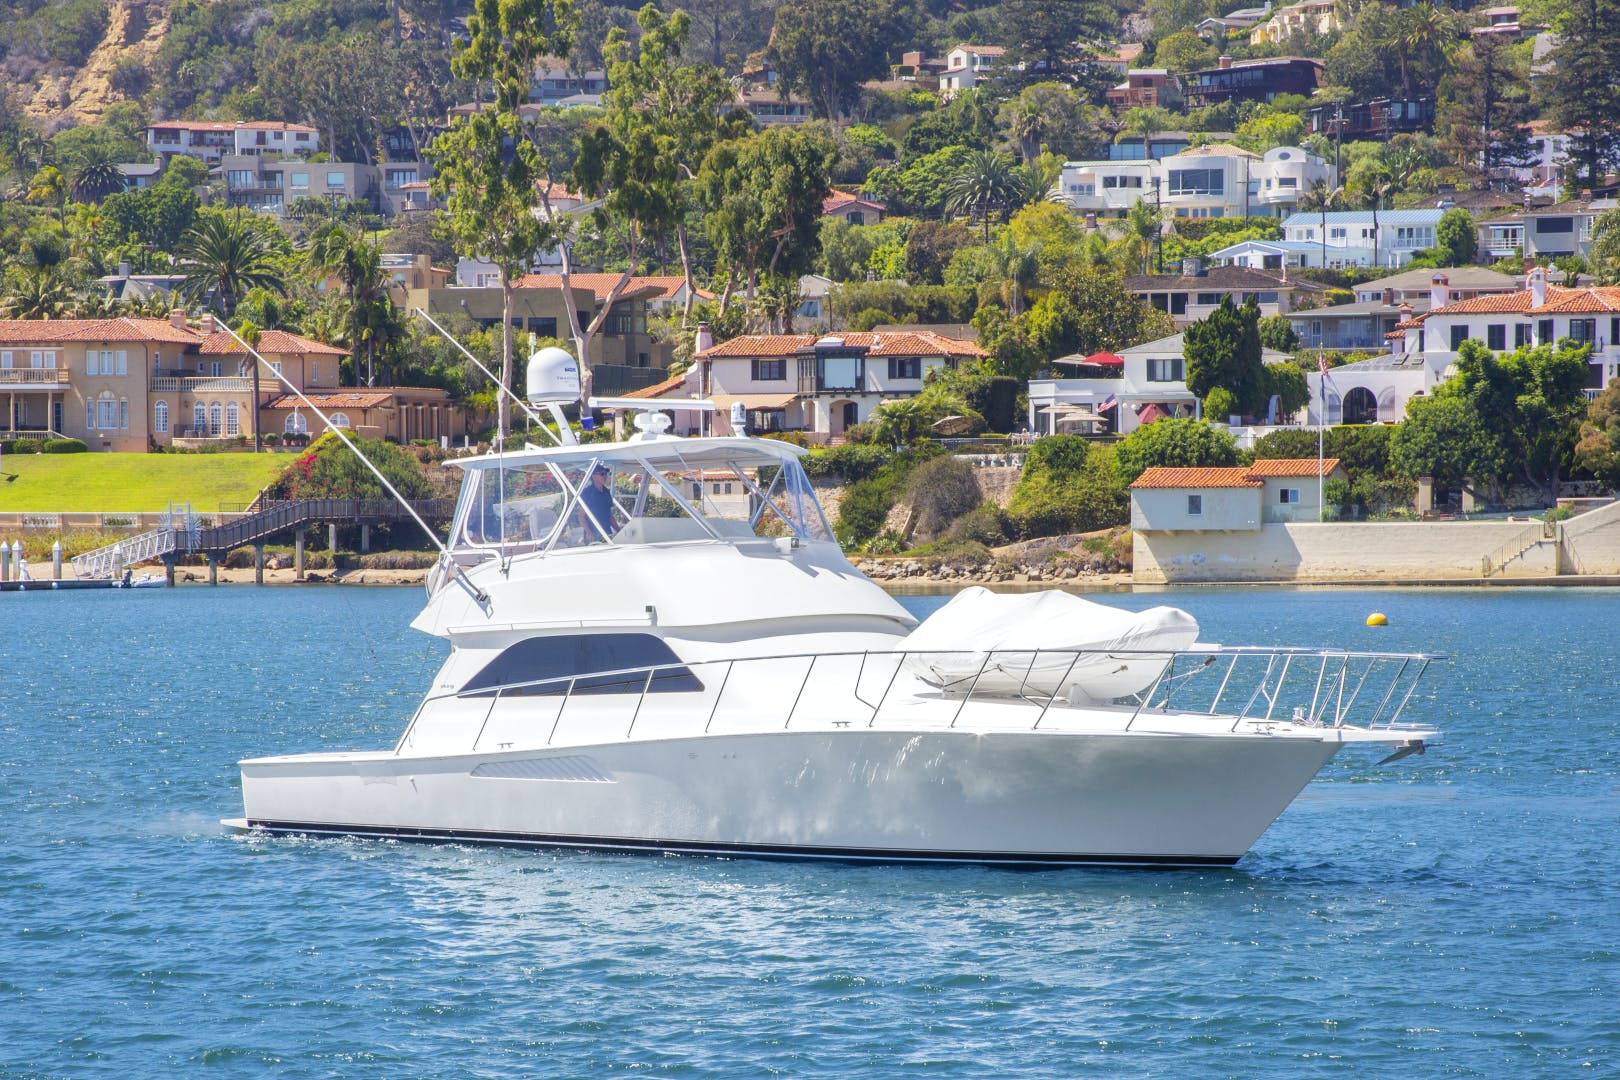 ROCKETSHIP Yacht for Sale | 52 Viking 2002